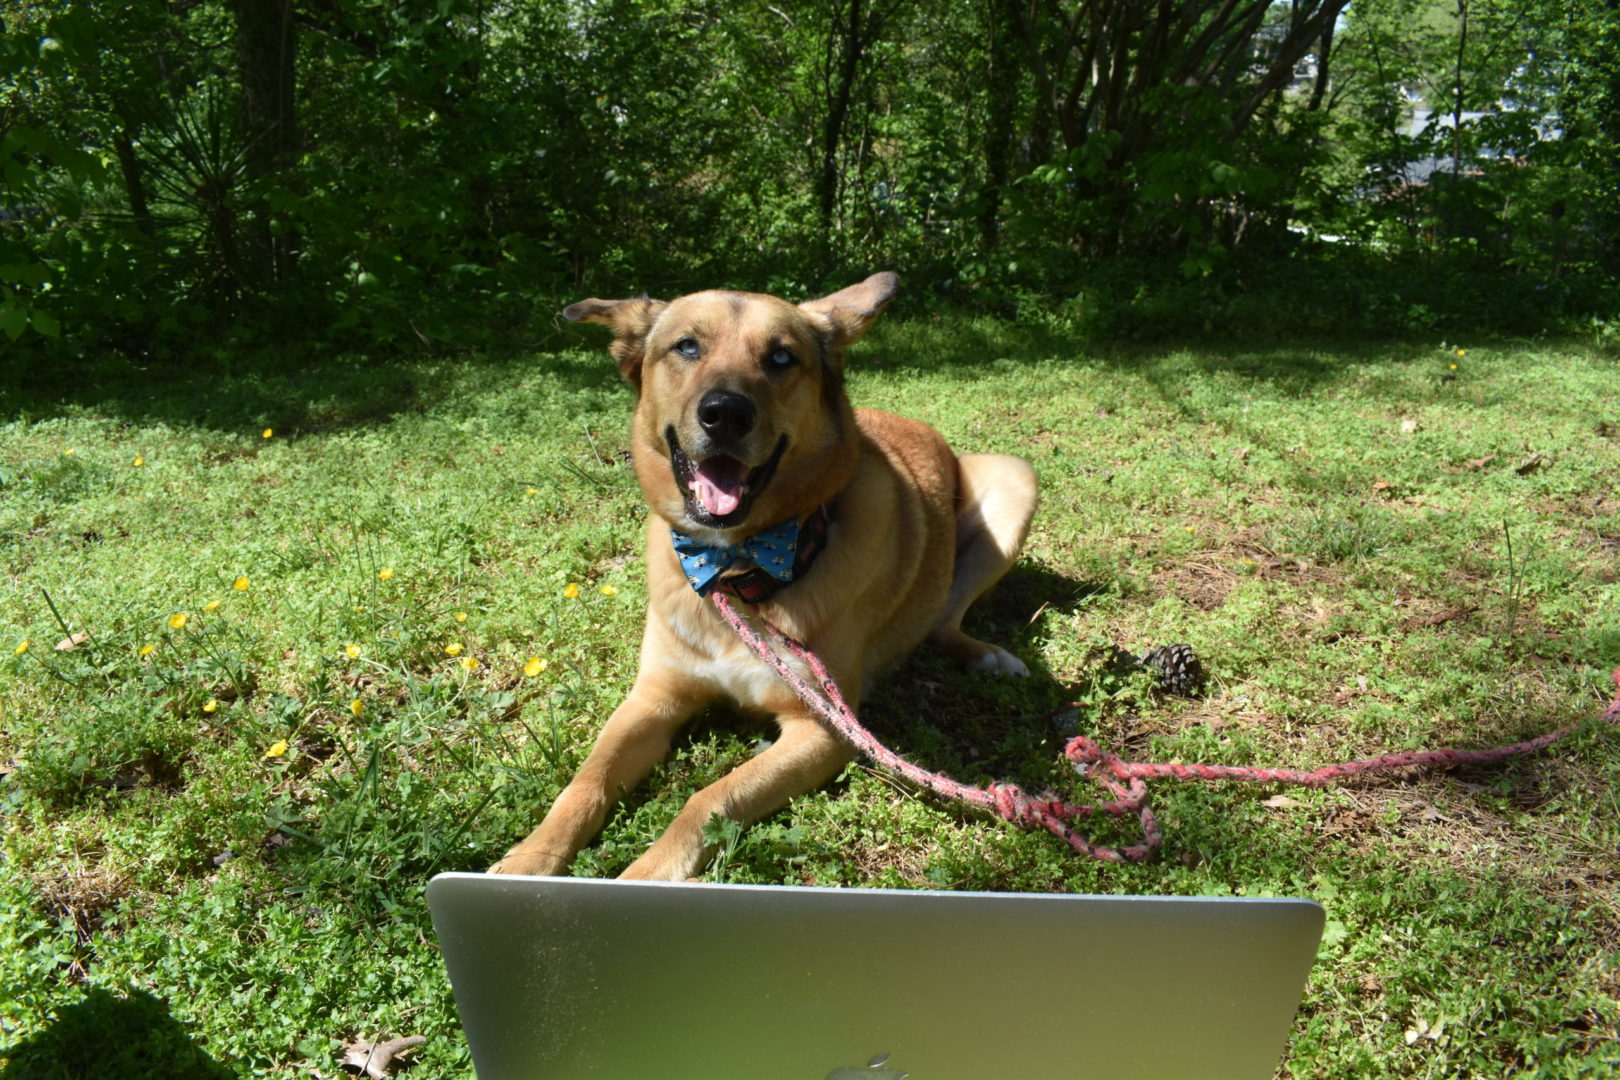 Picture of dog, Blu, with a bow tie in front of a laptop